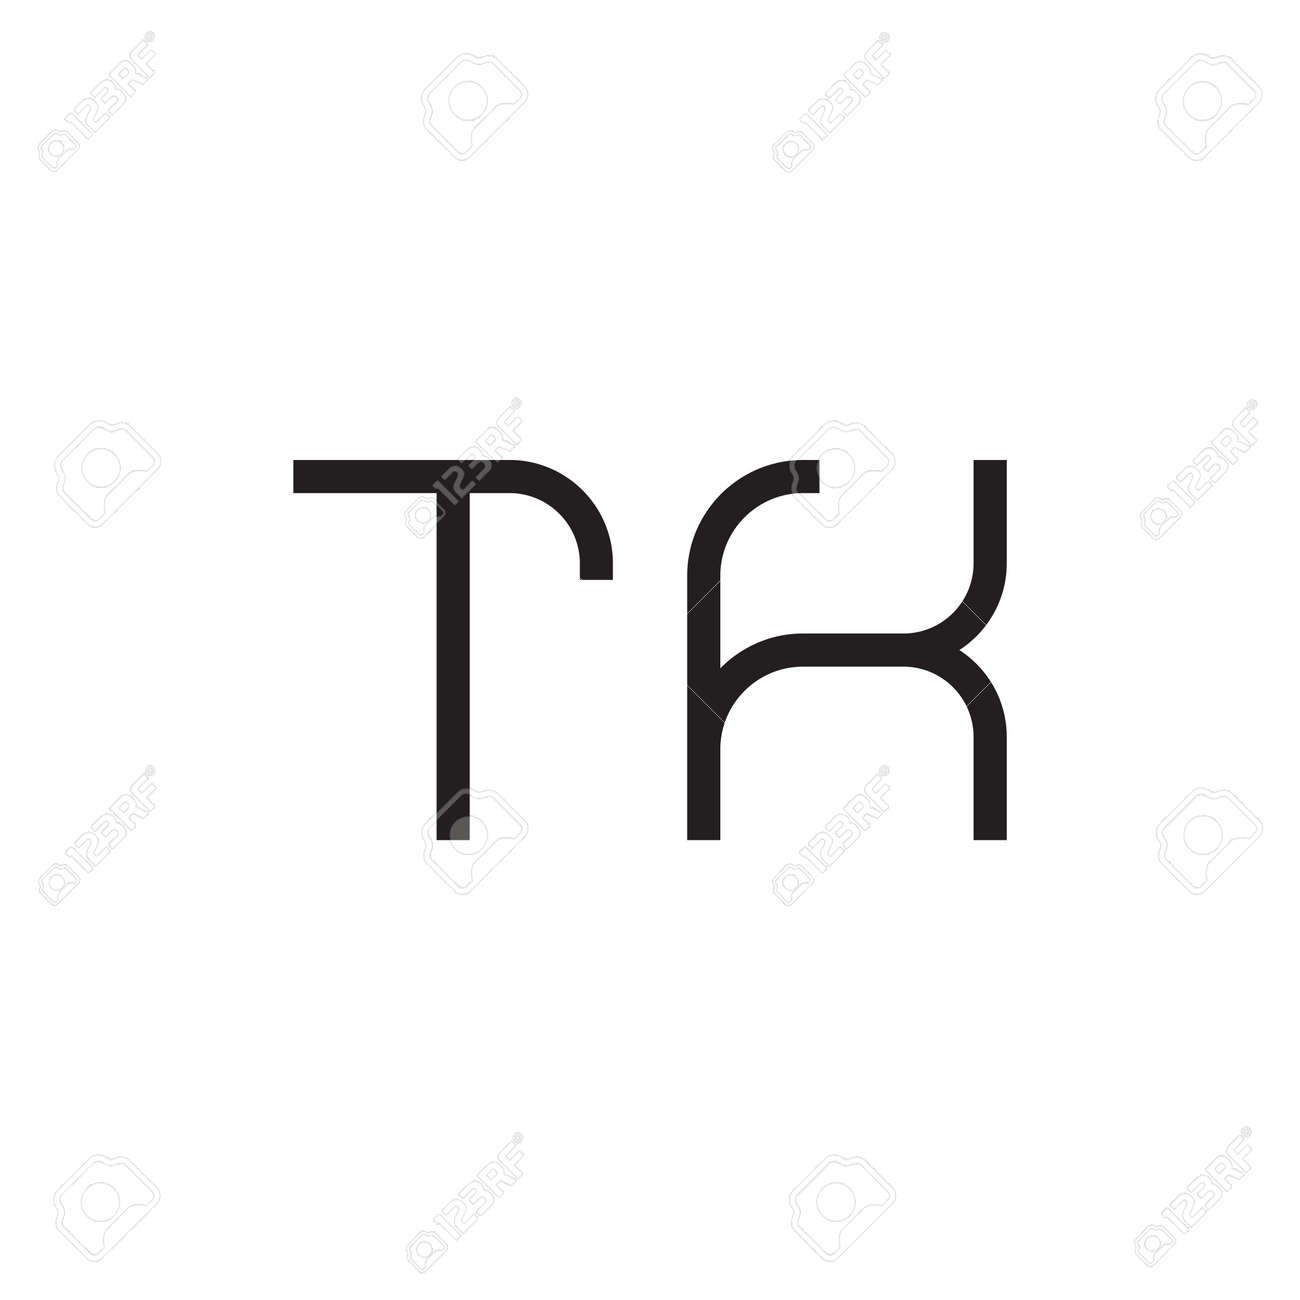 tk initial letter vector logo icon - 162049676